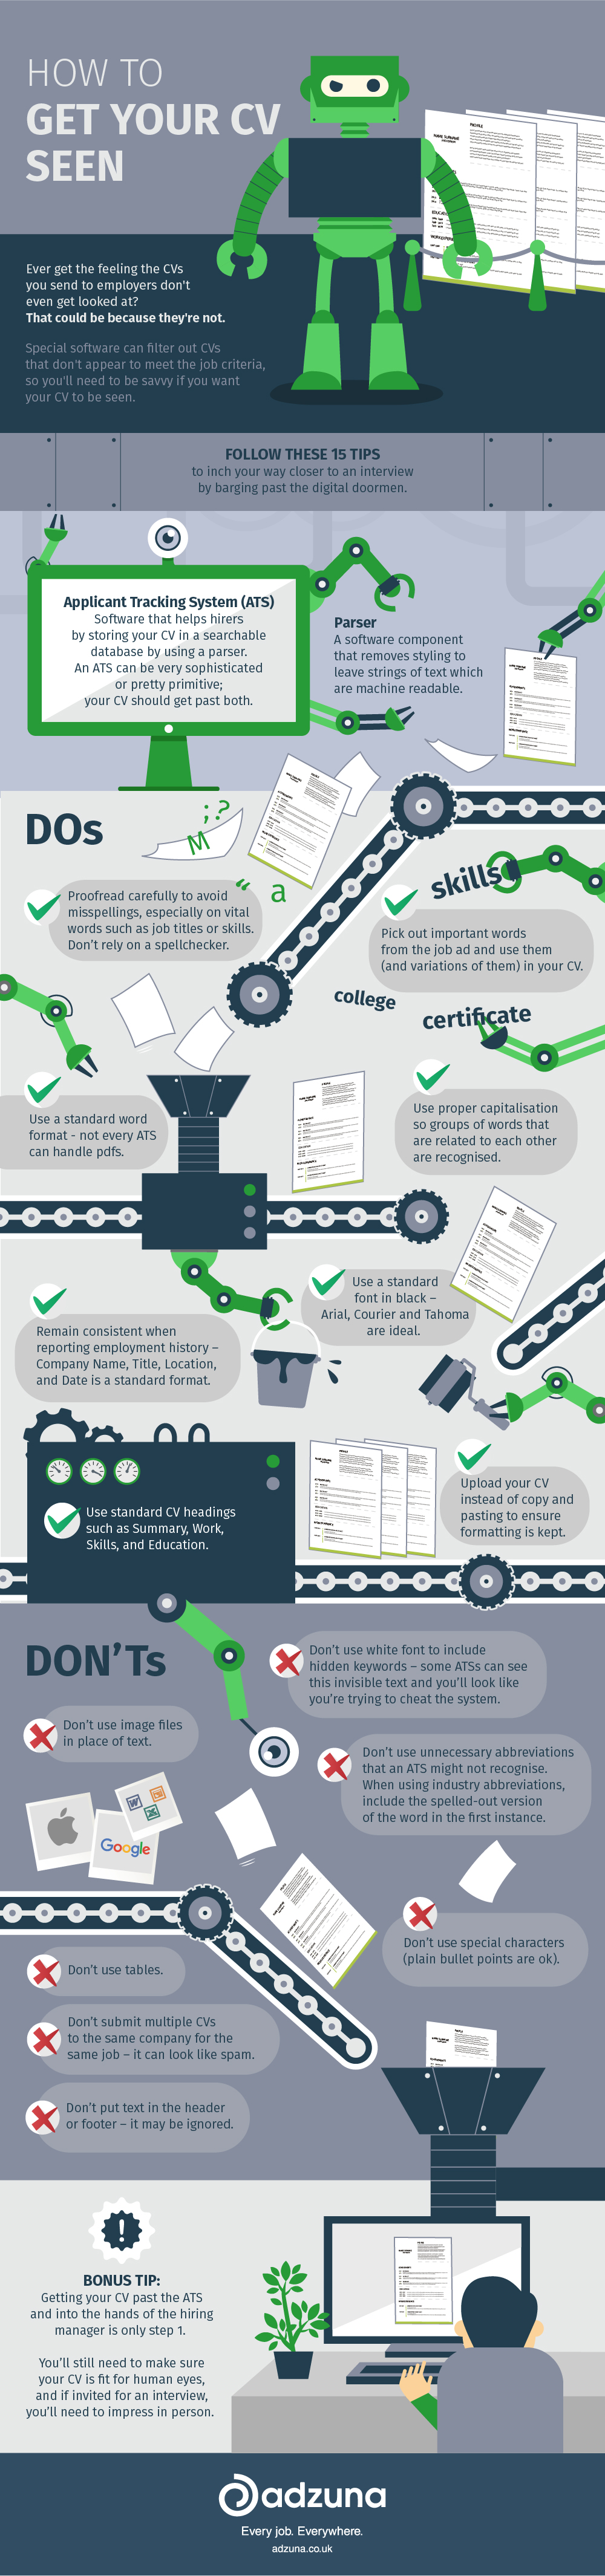 How To Get Your CV Seen infographic